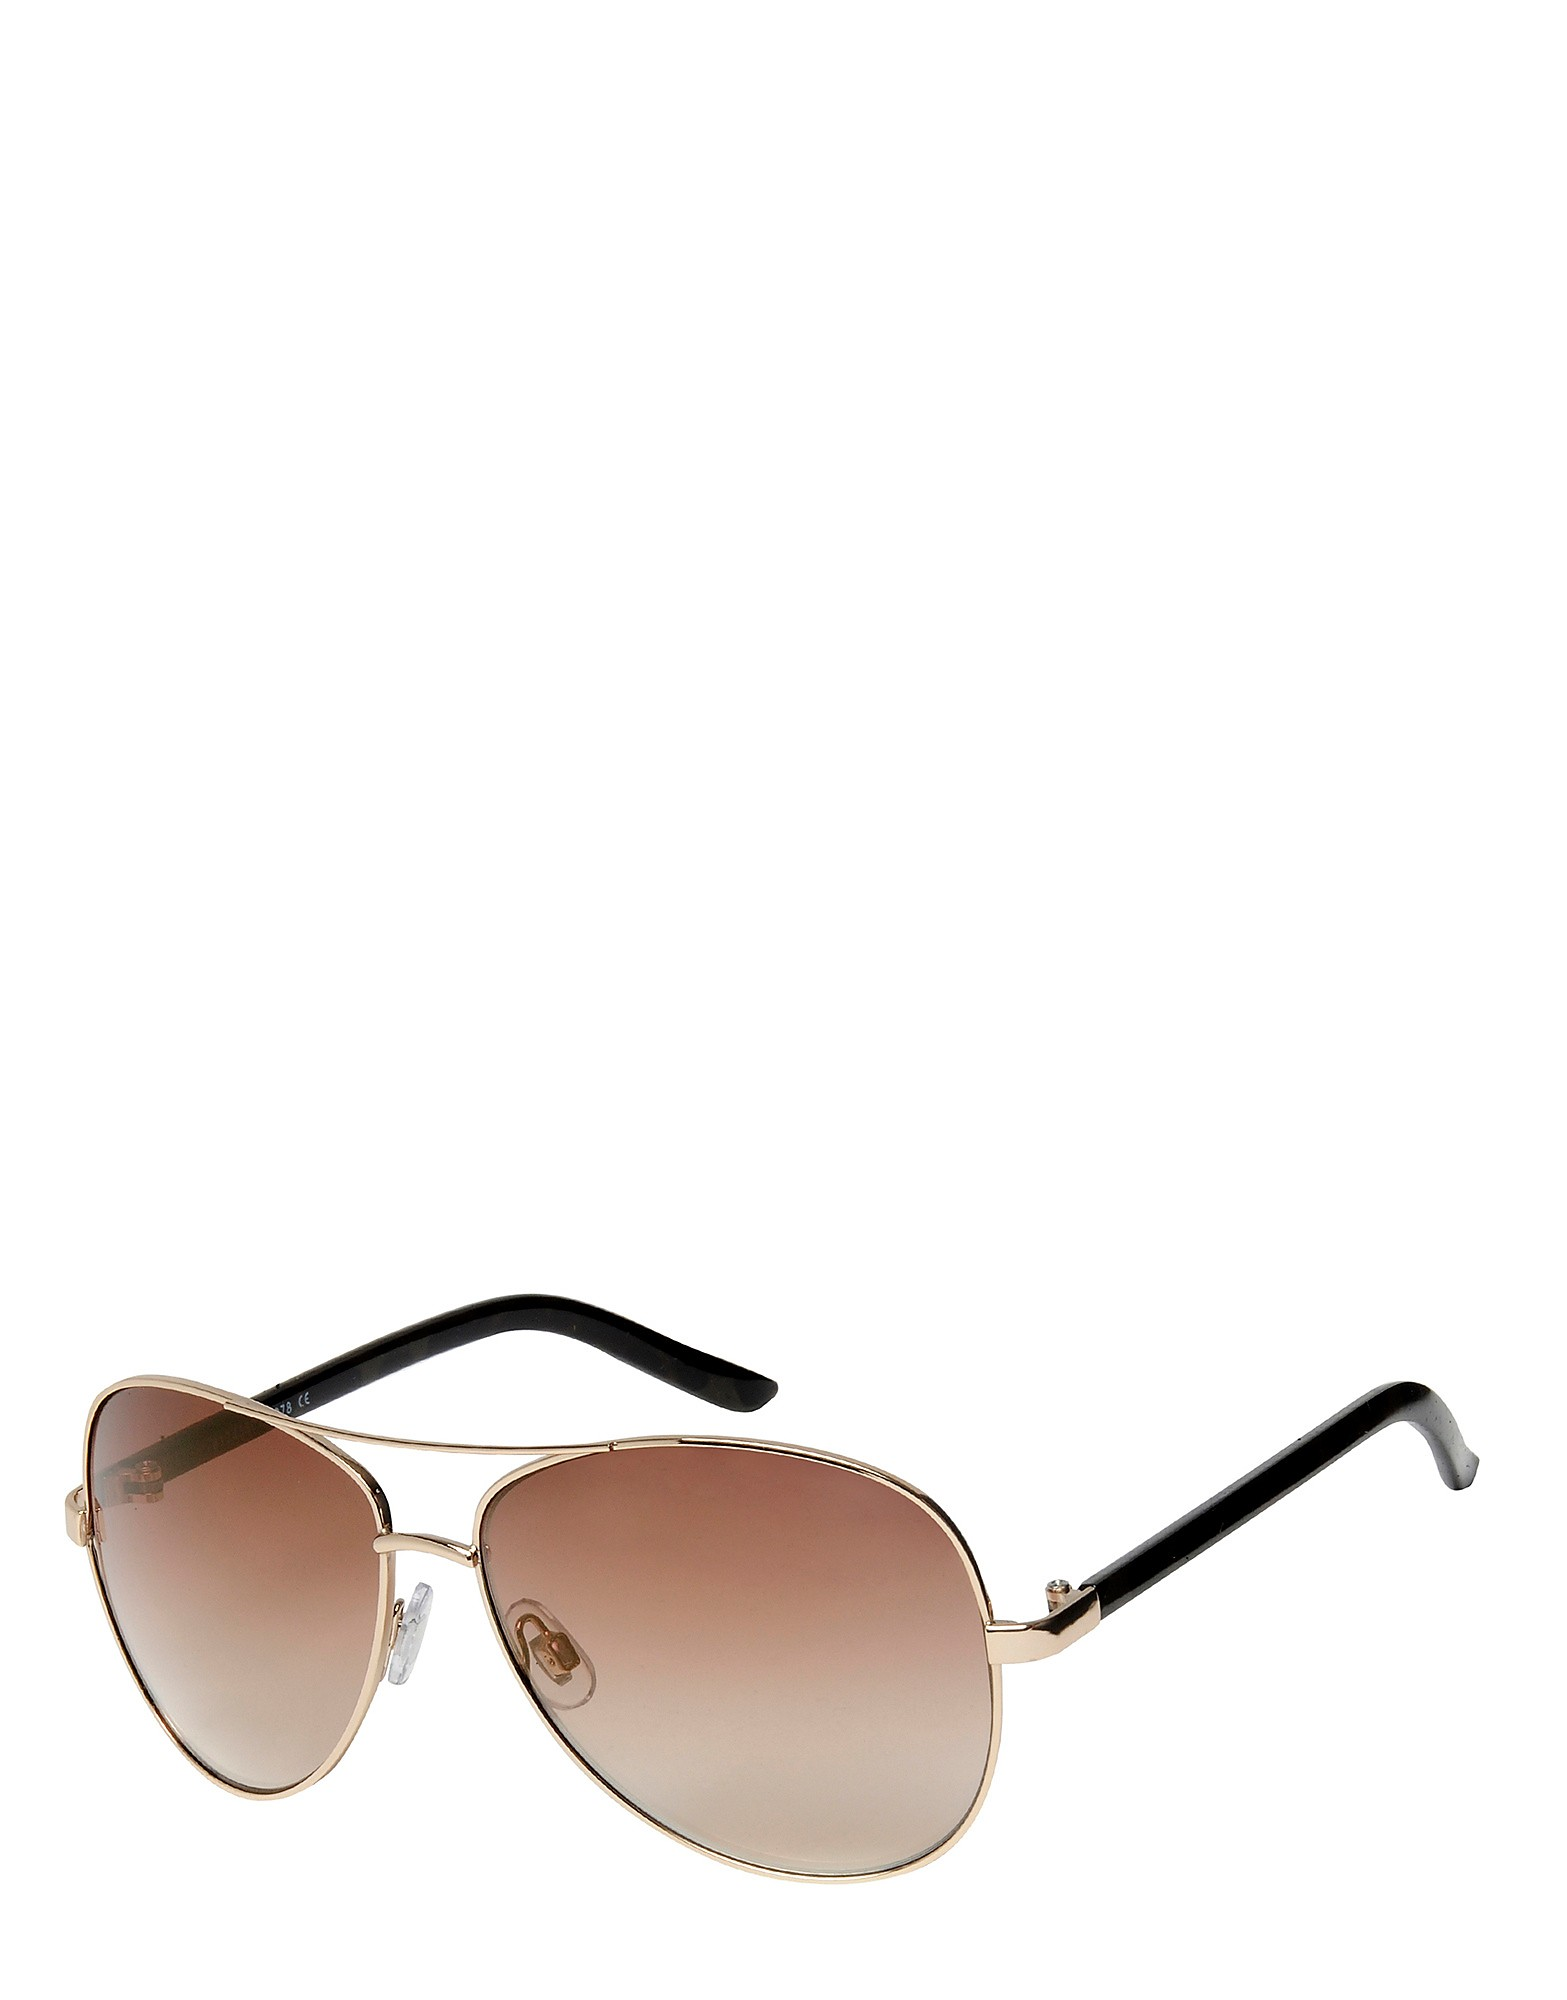 Brookhaven Sam Leopard Aviator Sunglasses - Only at JD - Gold/Brown - Womens, Gold/Brown